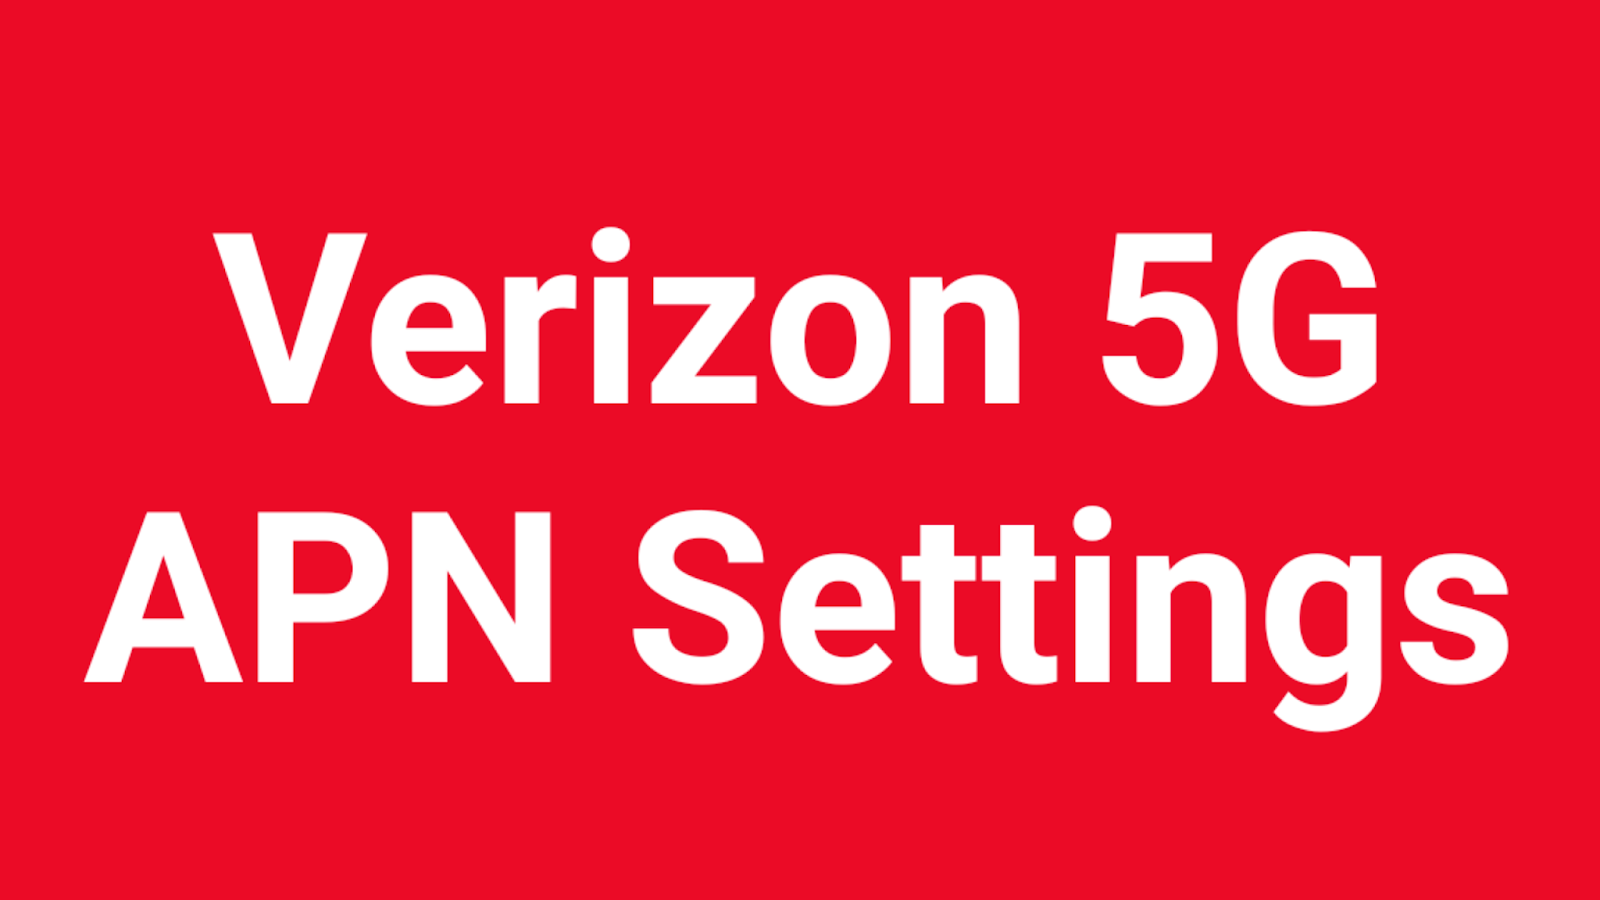 Verizon Wireless APN Settings Android, iPhone